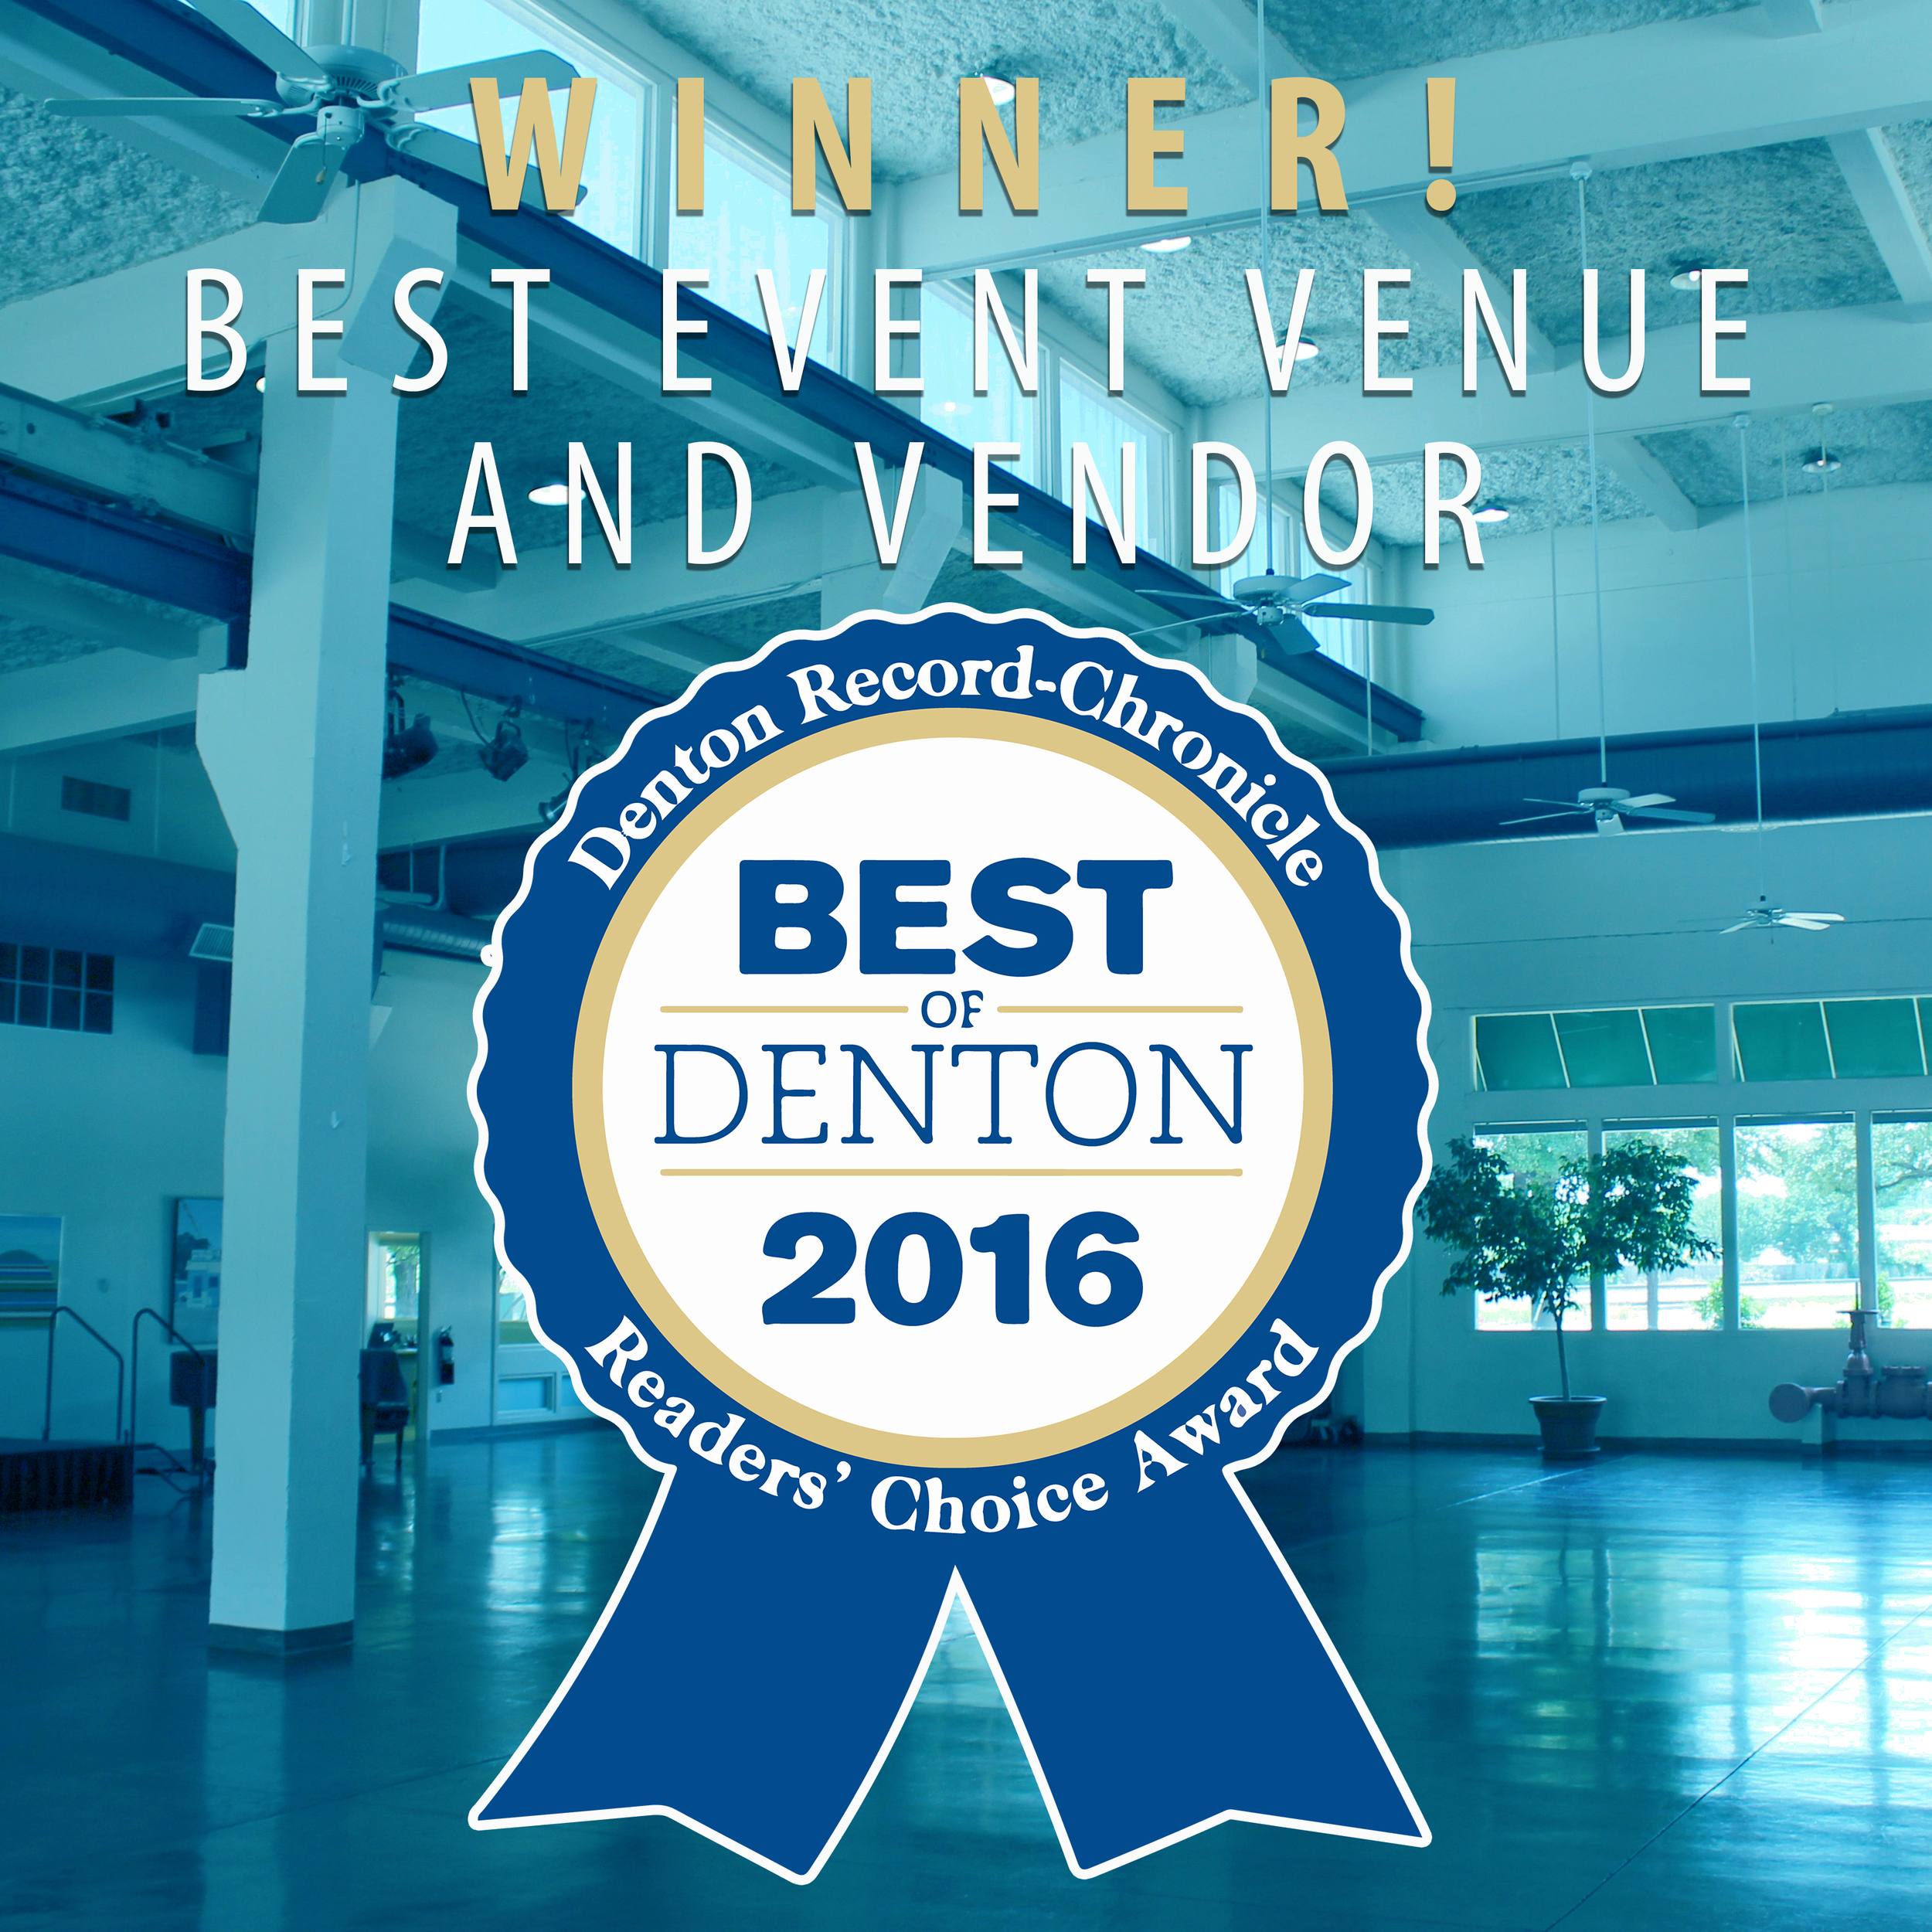 The Patterson-Appleton Arts Center was voted Best Event Venue & Vendor in Denton for 2016